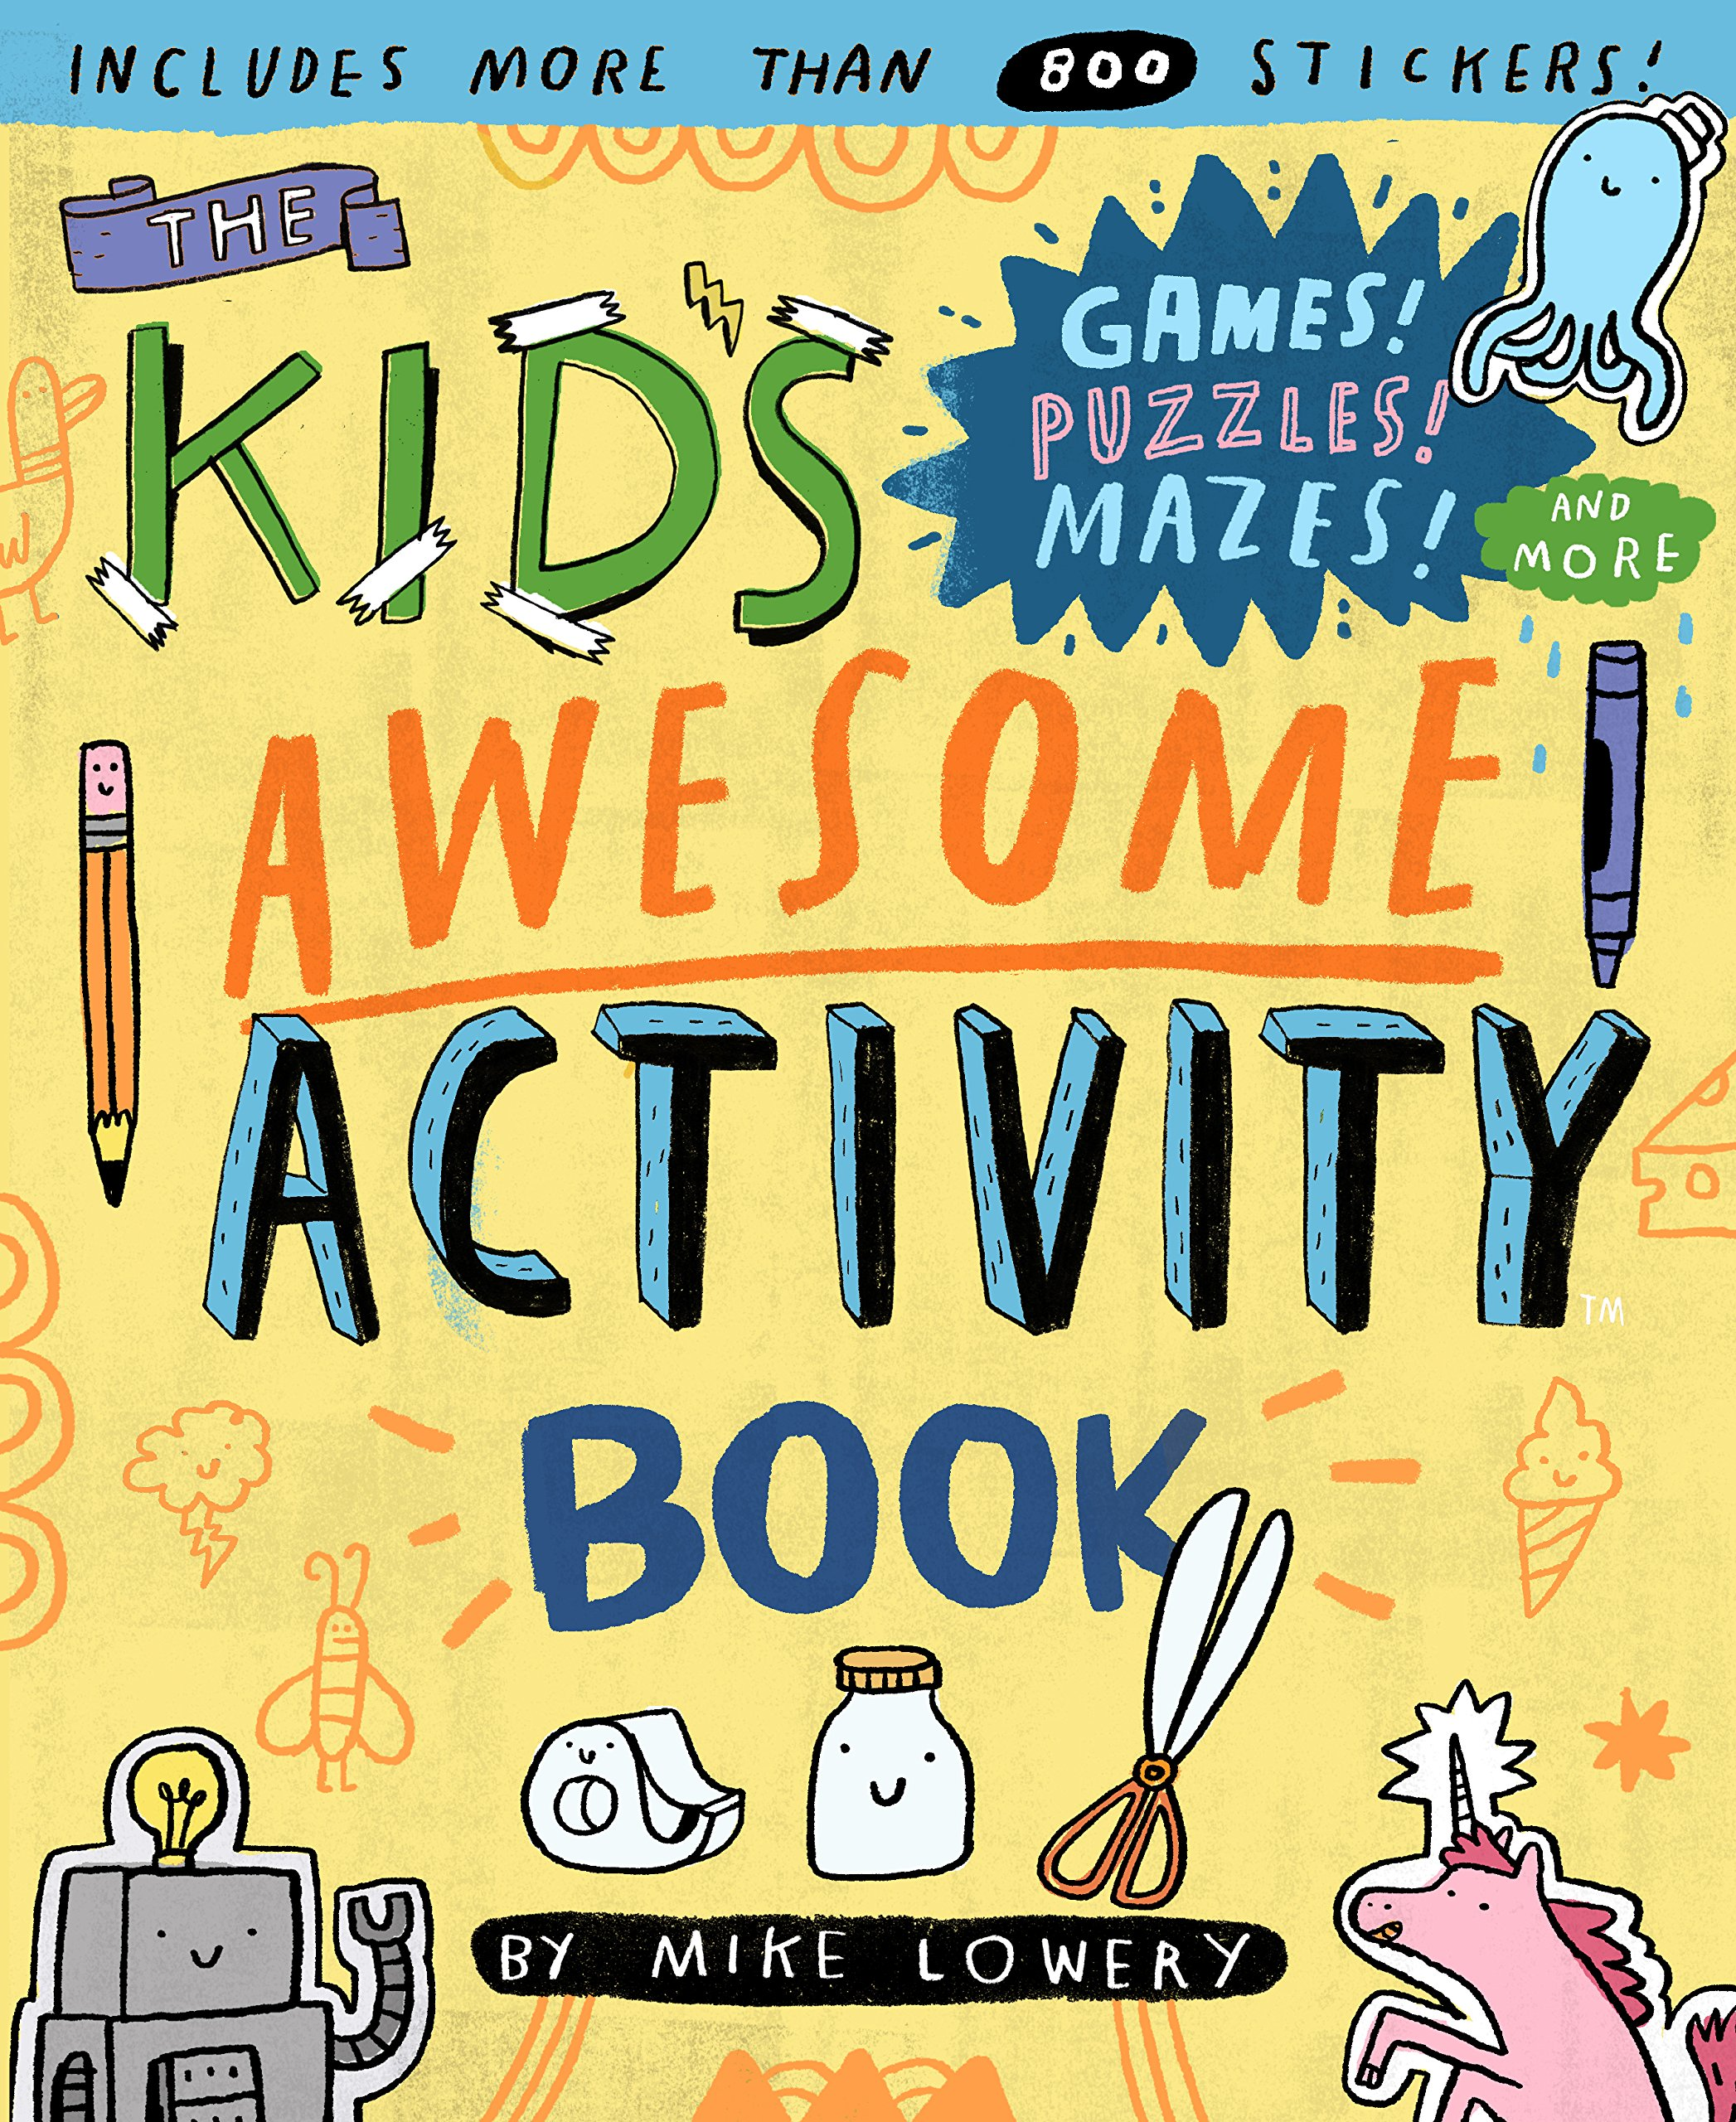 Image for The Kid's Awesome Activity Book: Games! Puzzles! Mazes! And More!